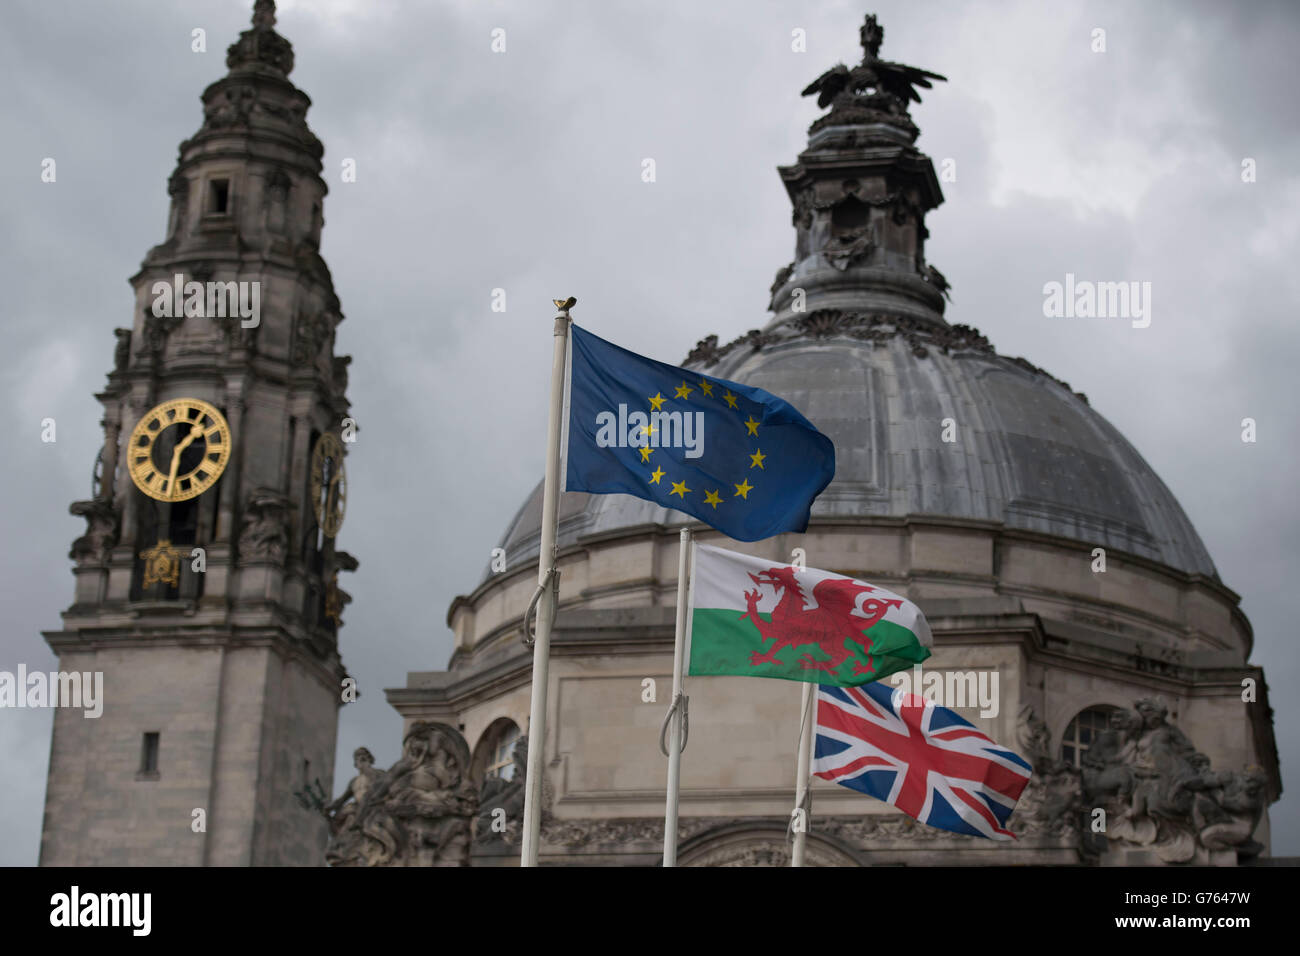 A Welsh Wales flag between a Union Jack and a European Union flag. - Stock Image